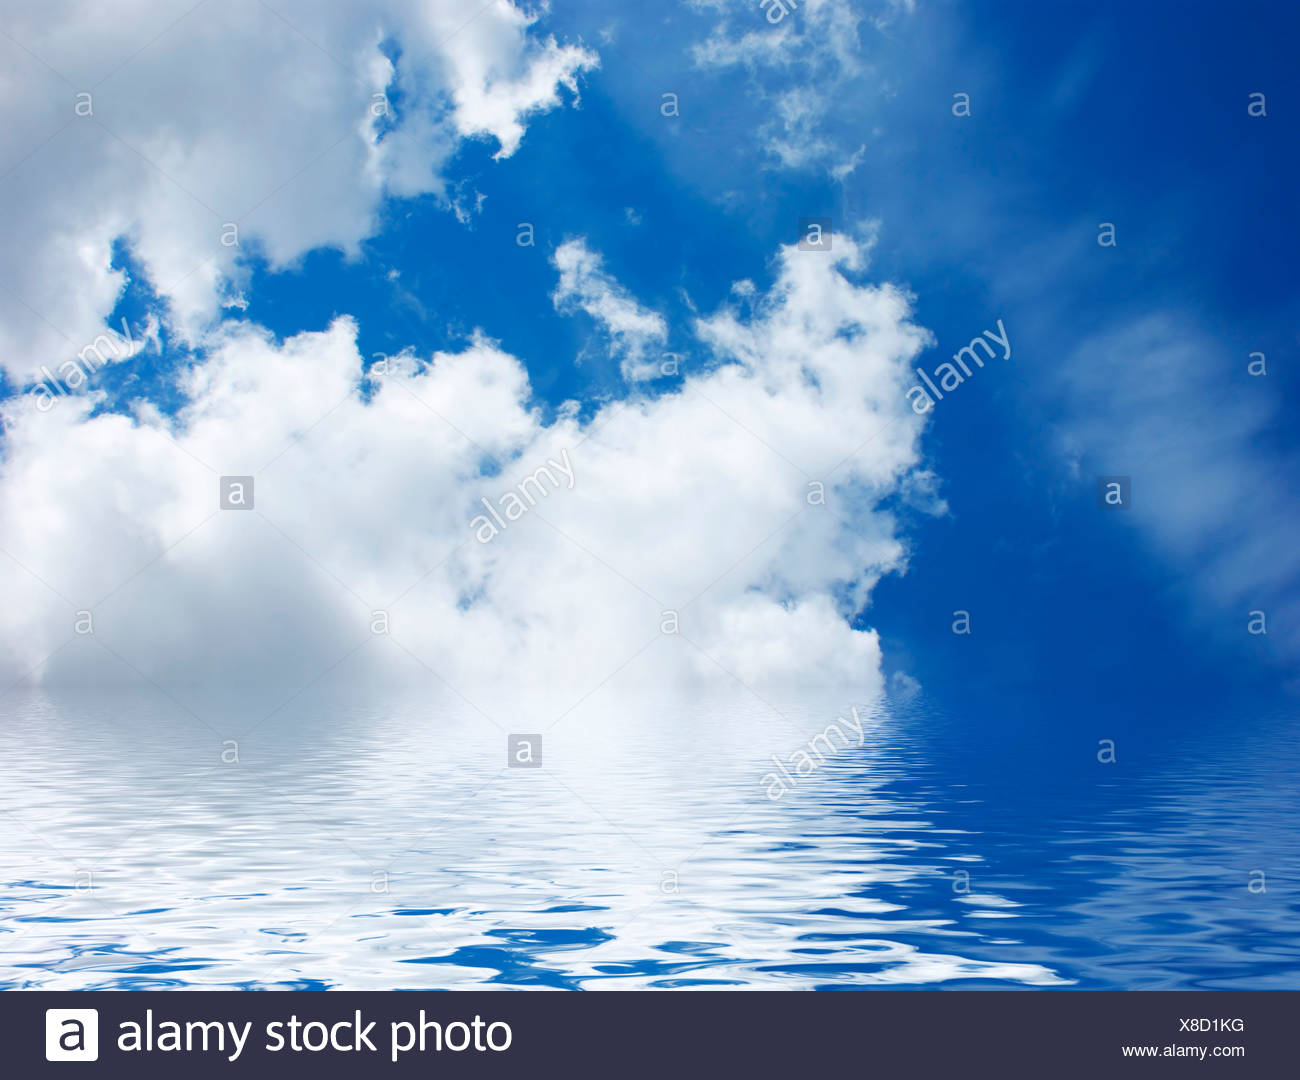 Blue sky with rippled water - Stock Image